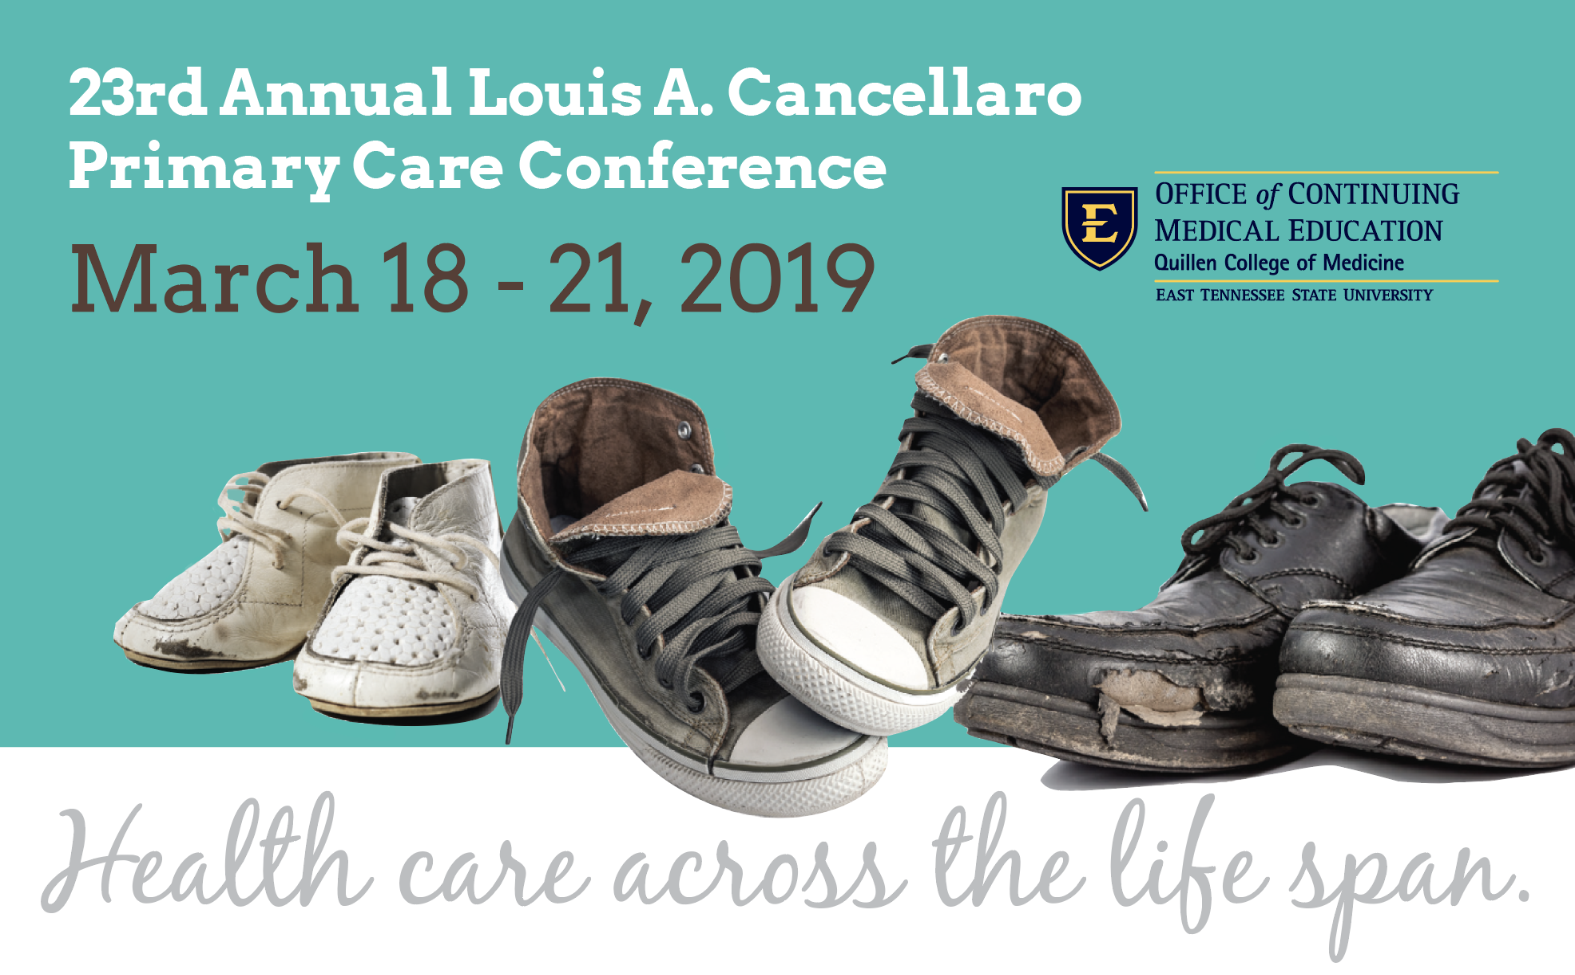 23rd Annual Louis A. Cancellaro Primary Care Conference